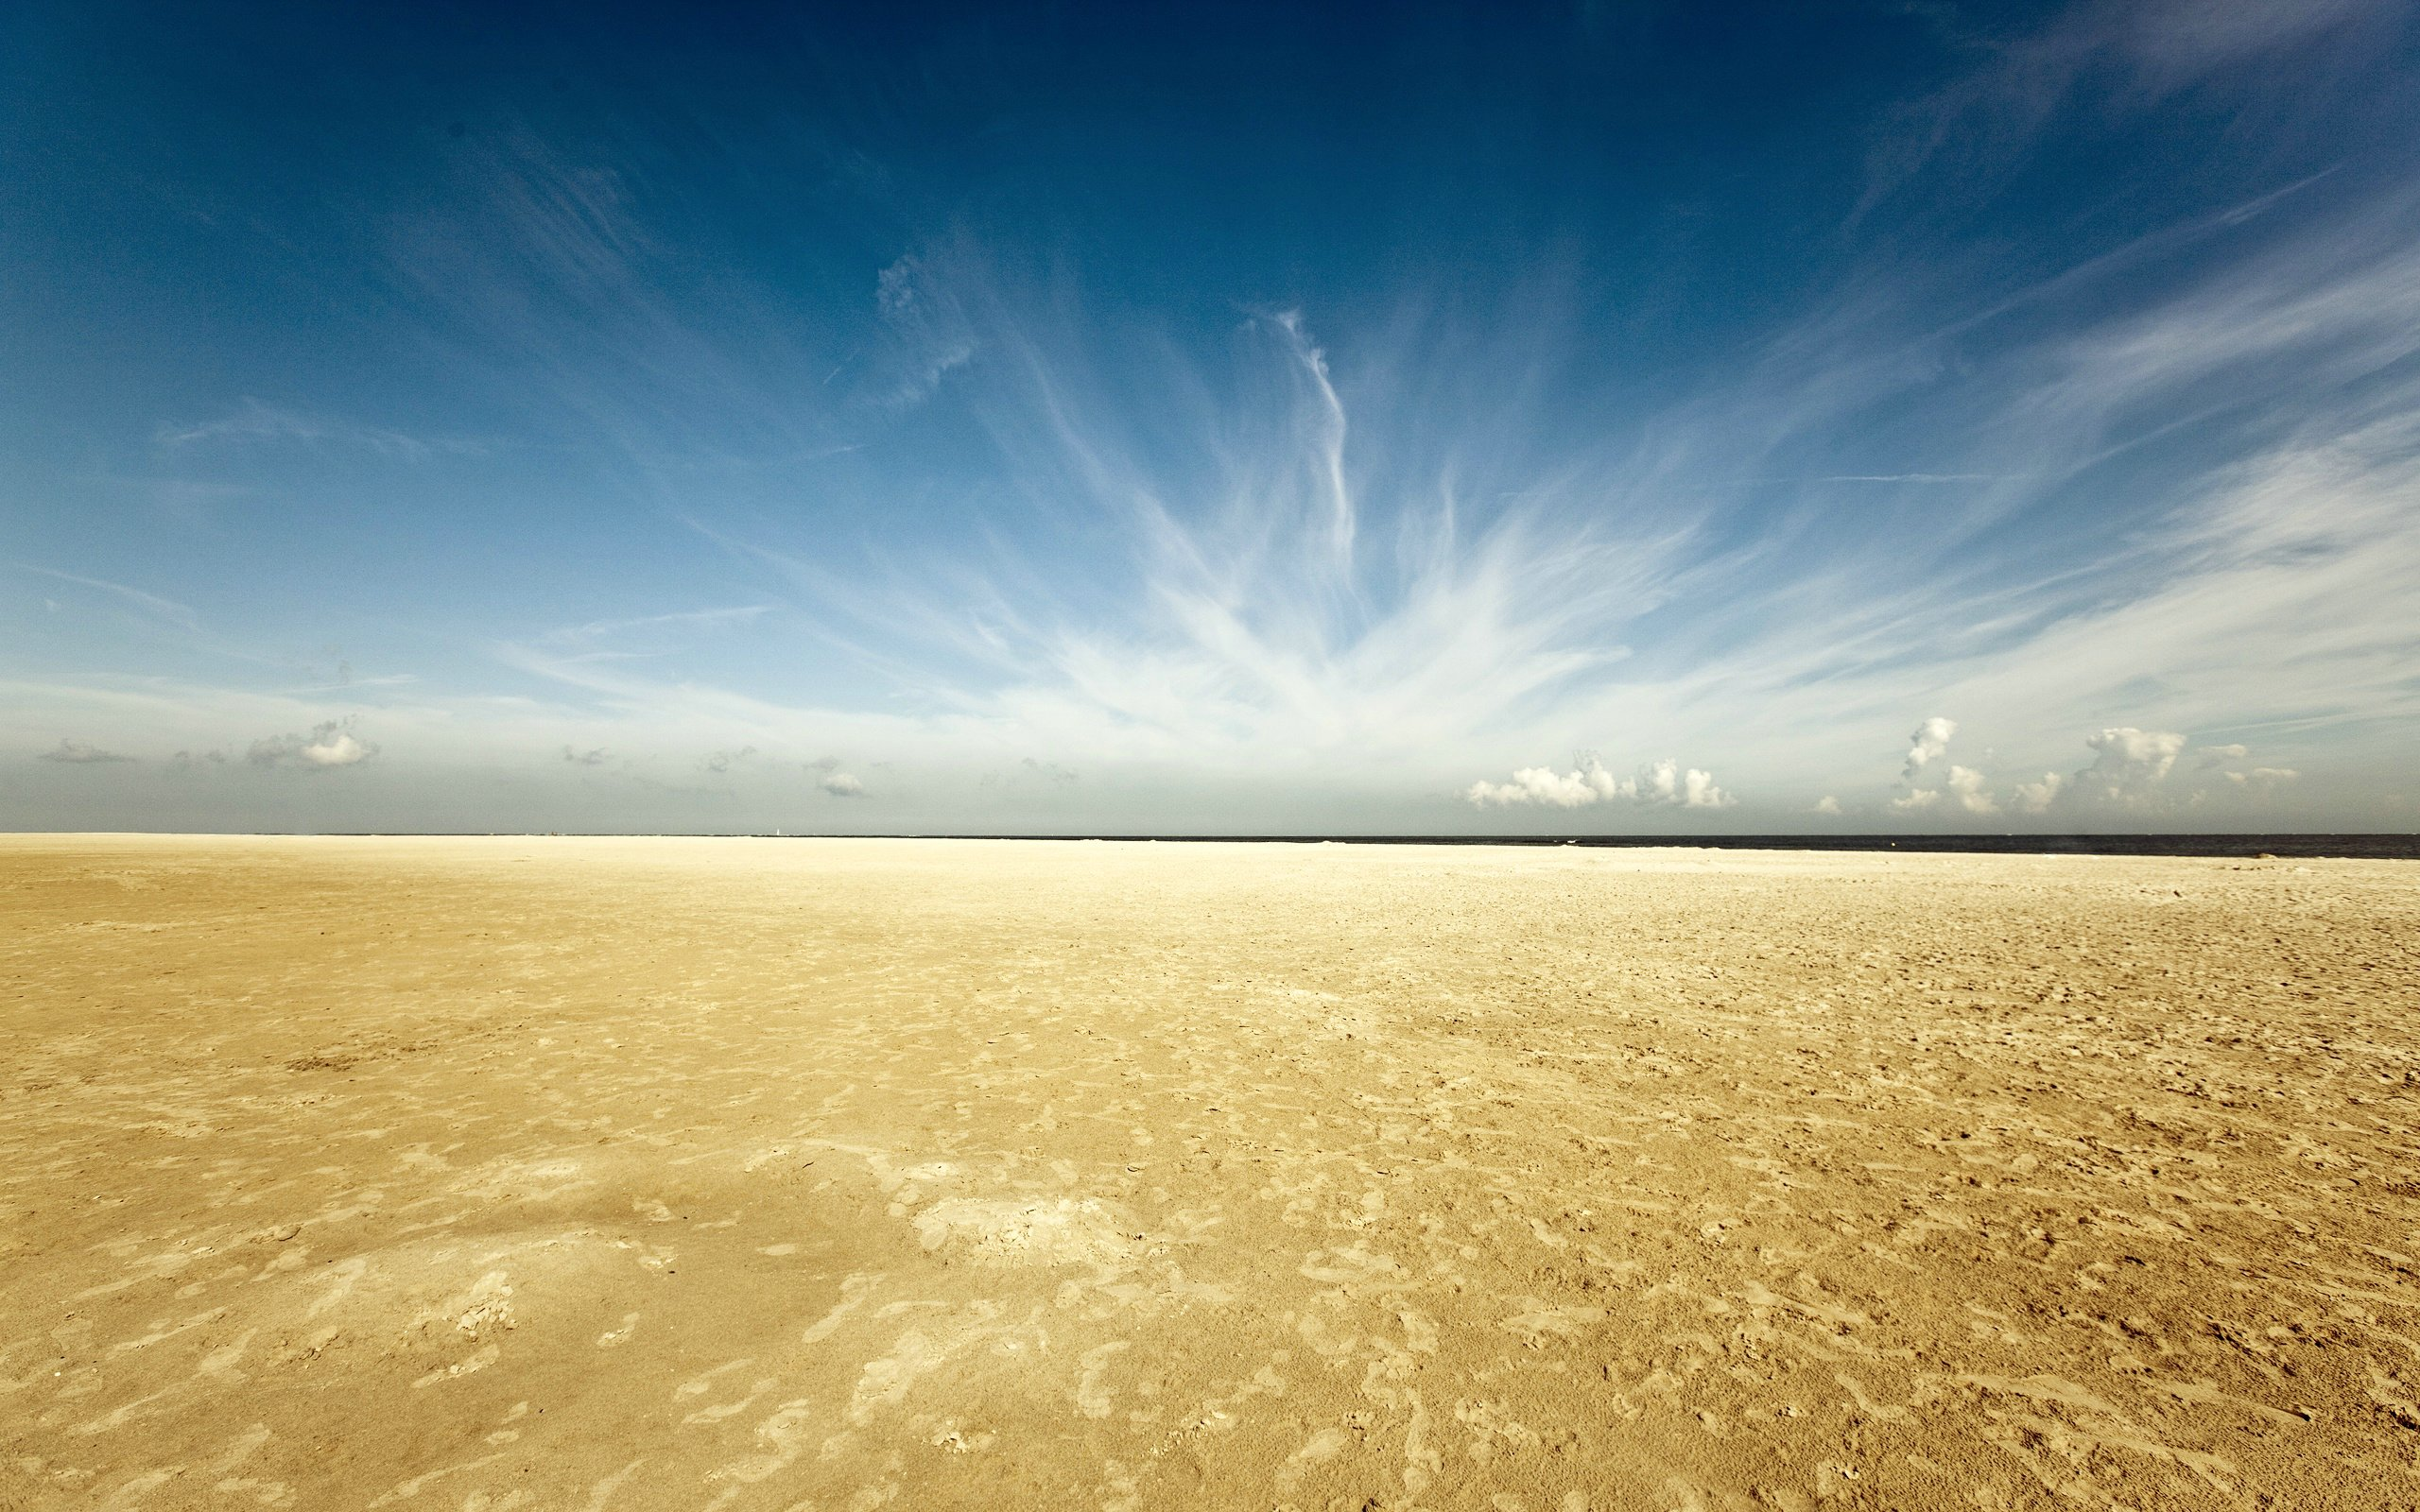 sky, clouds, desert, sand, horizon